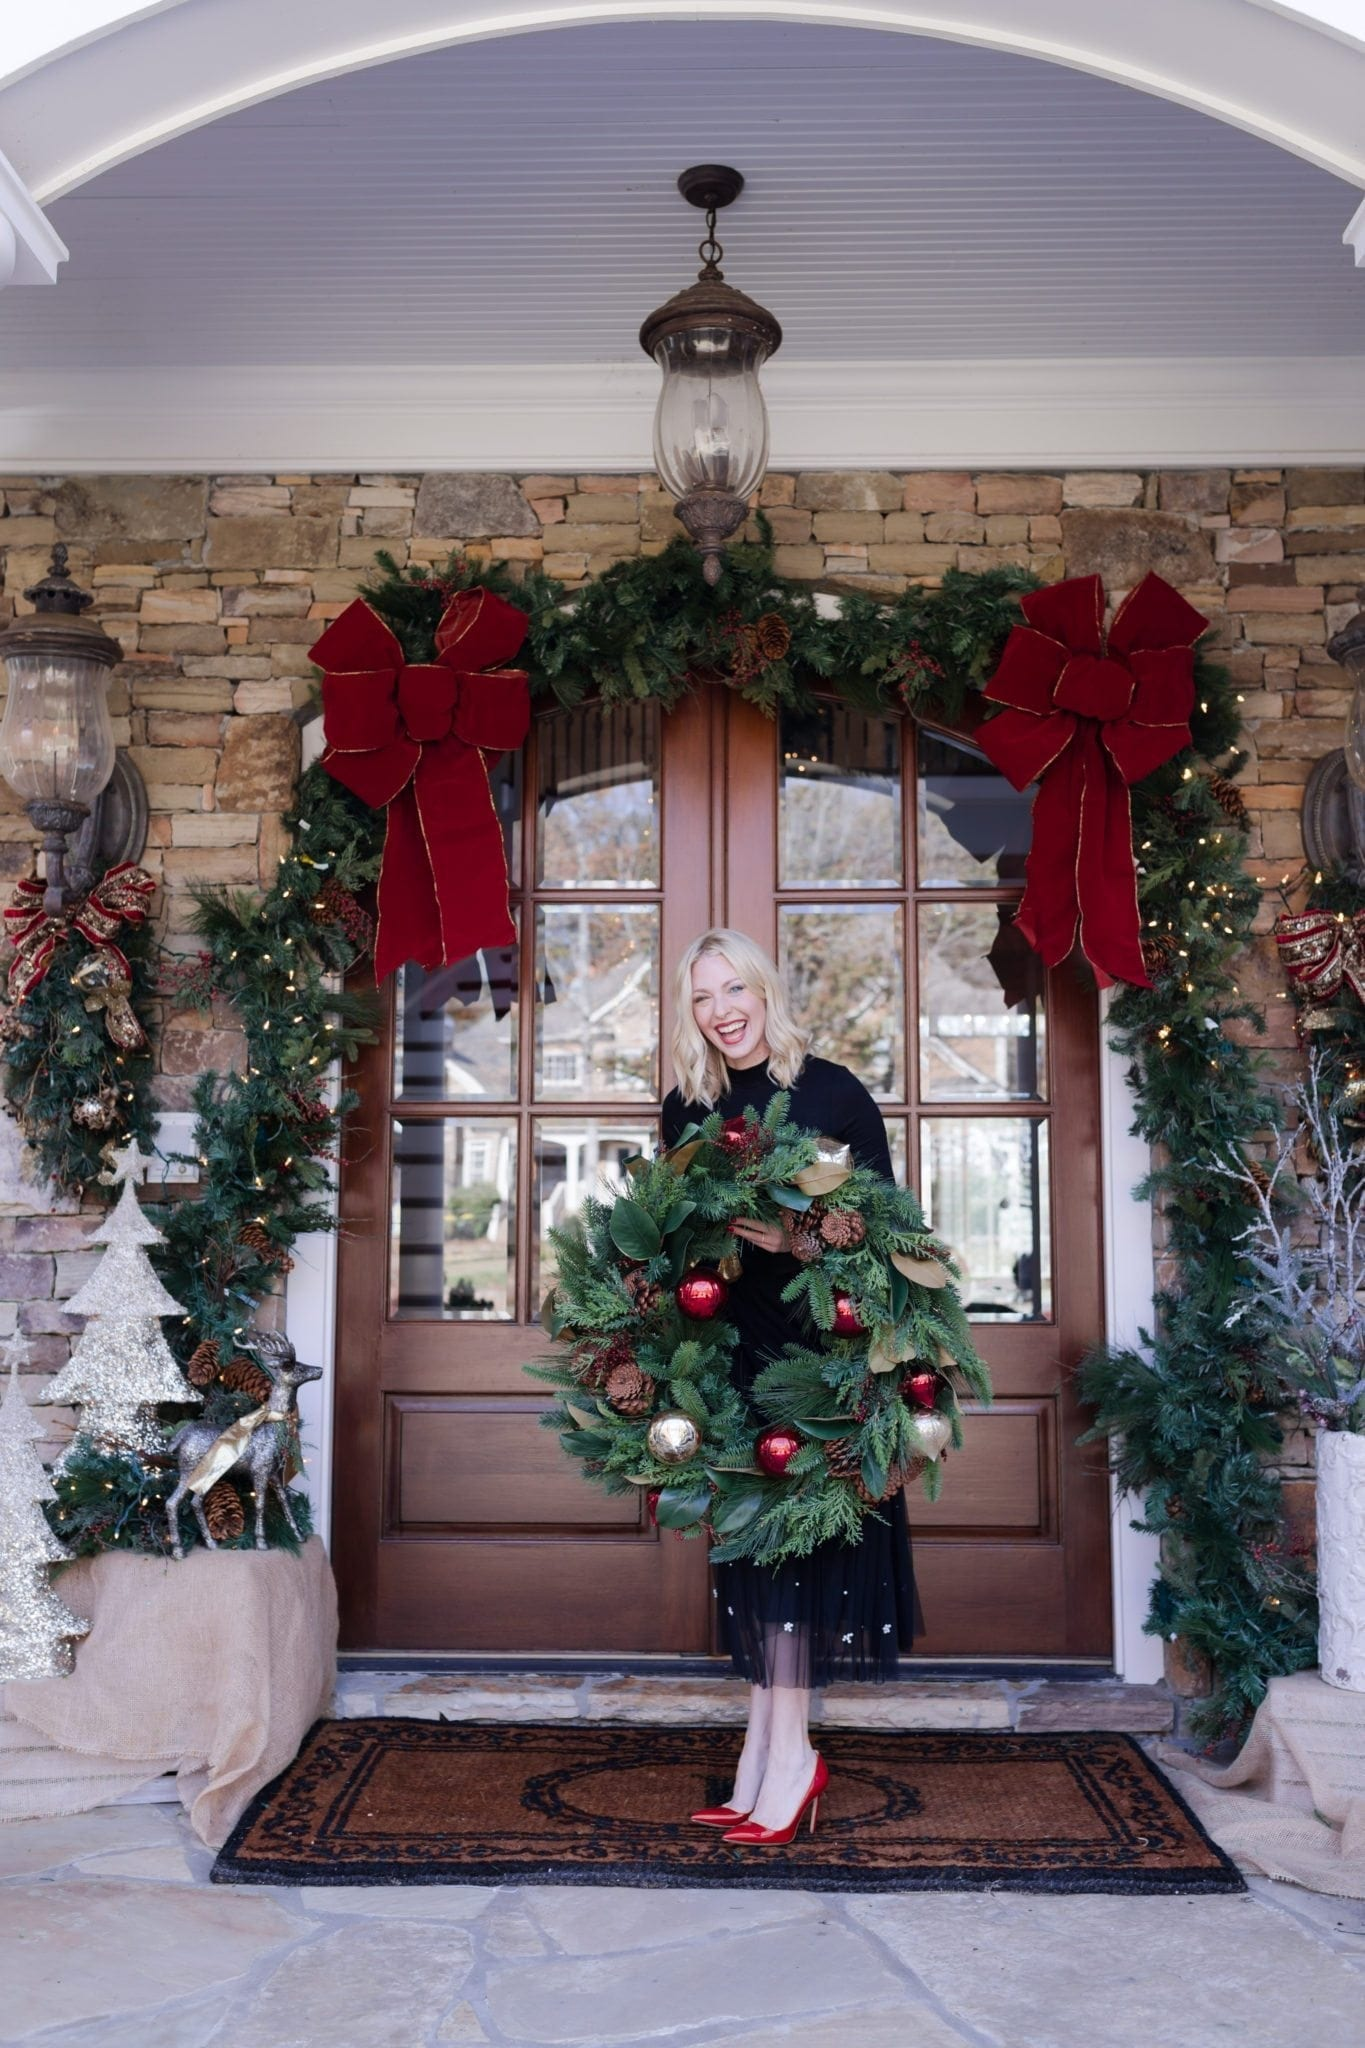 Christmas show house tour. How I decorate my house for Christmas.